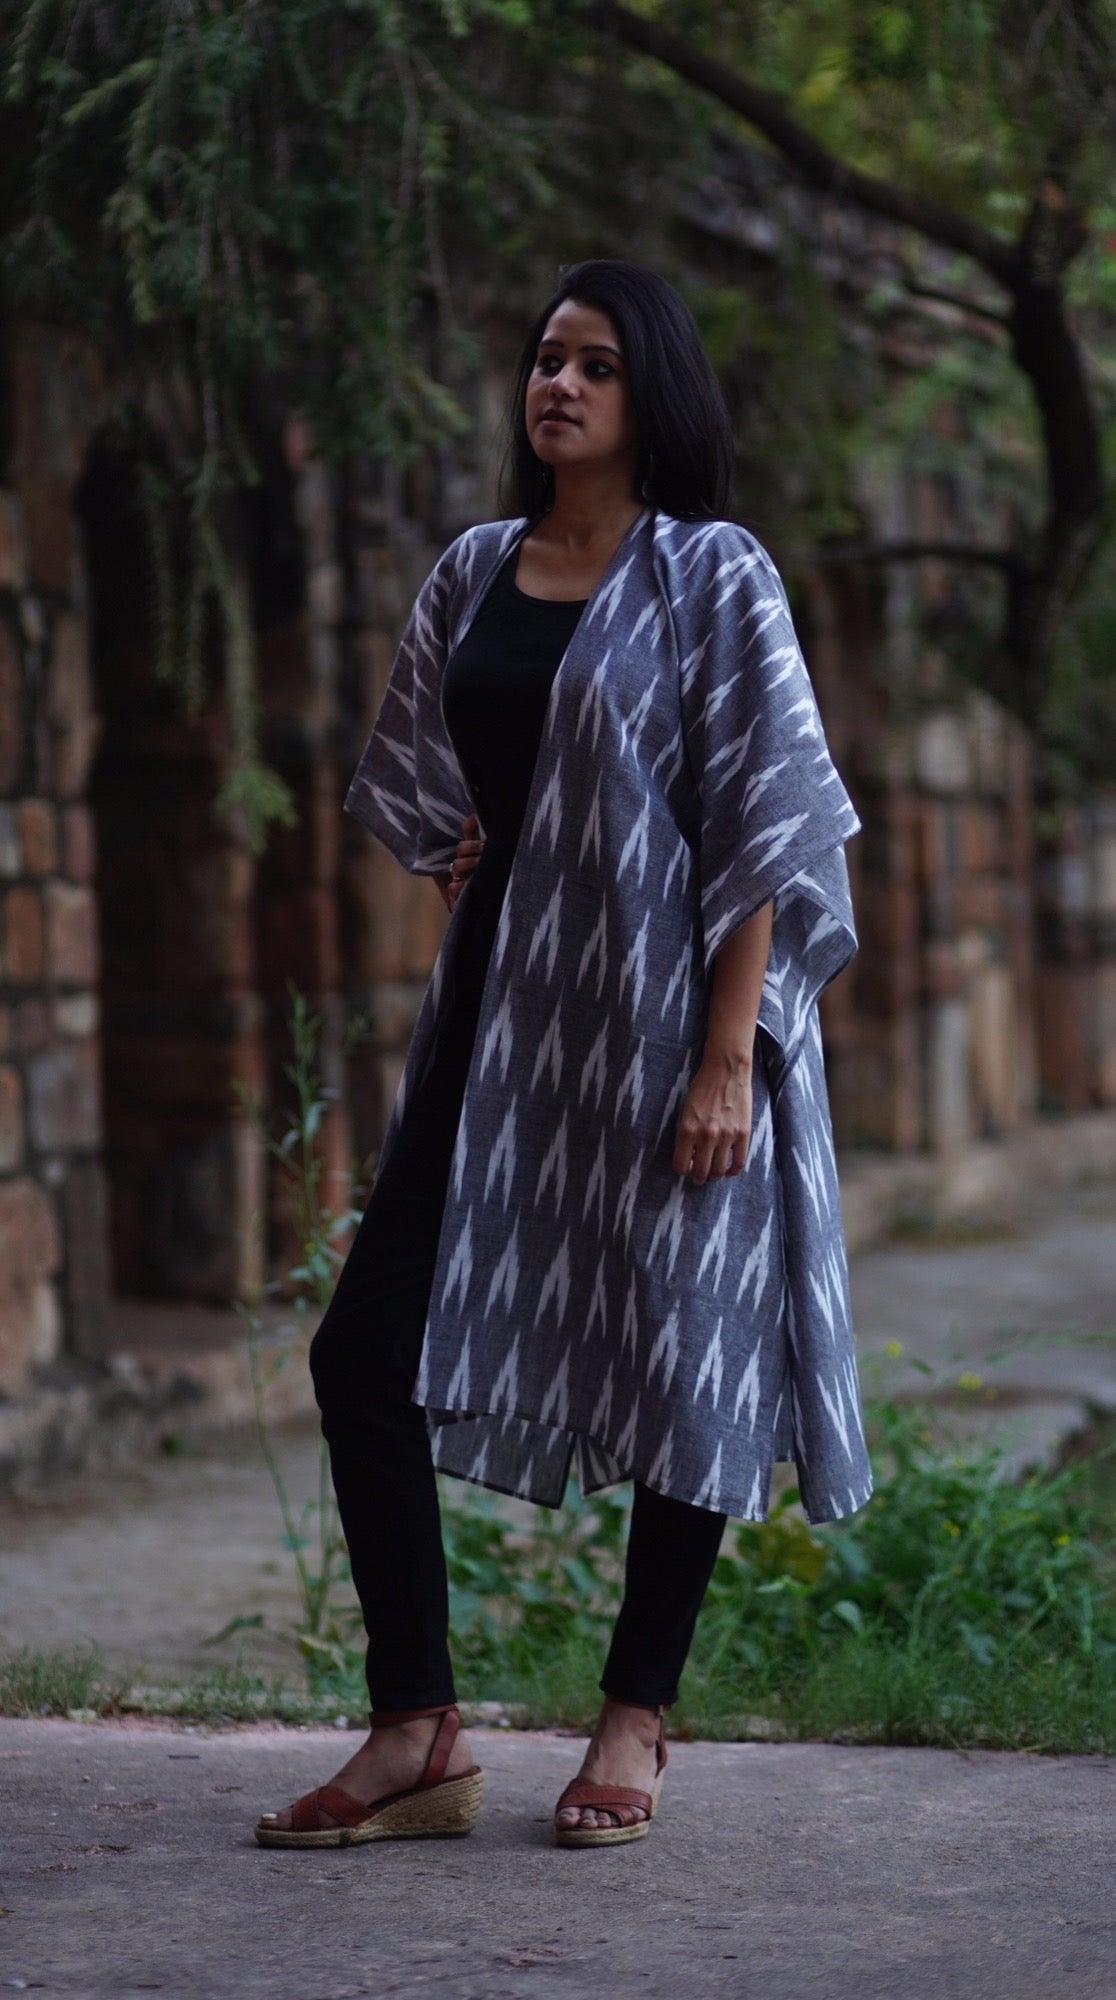 woman wearing a grey ikat kimono shrug sustainably sewn by sewing new futures NGO